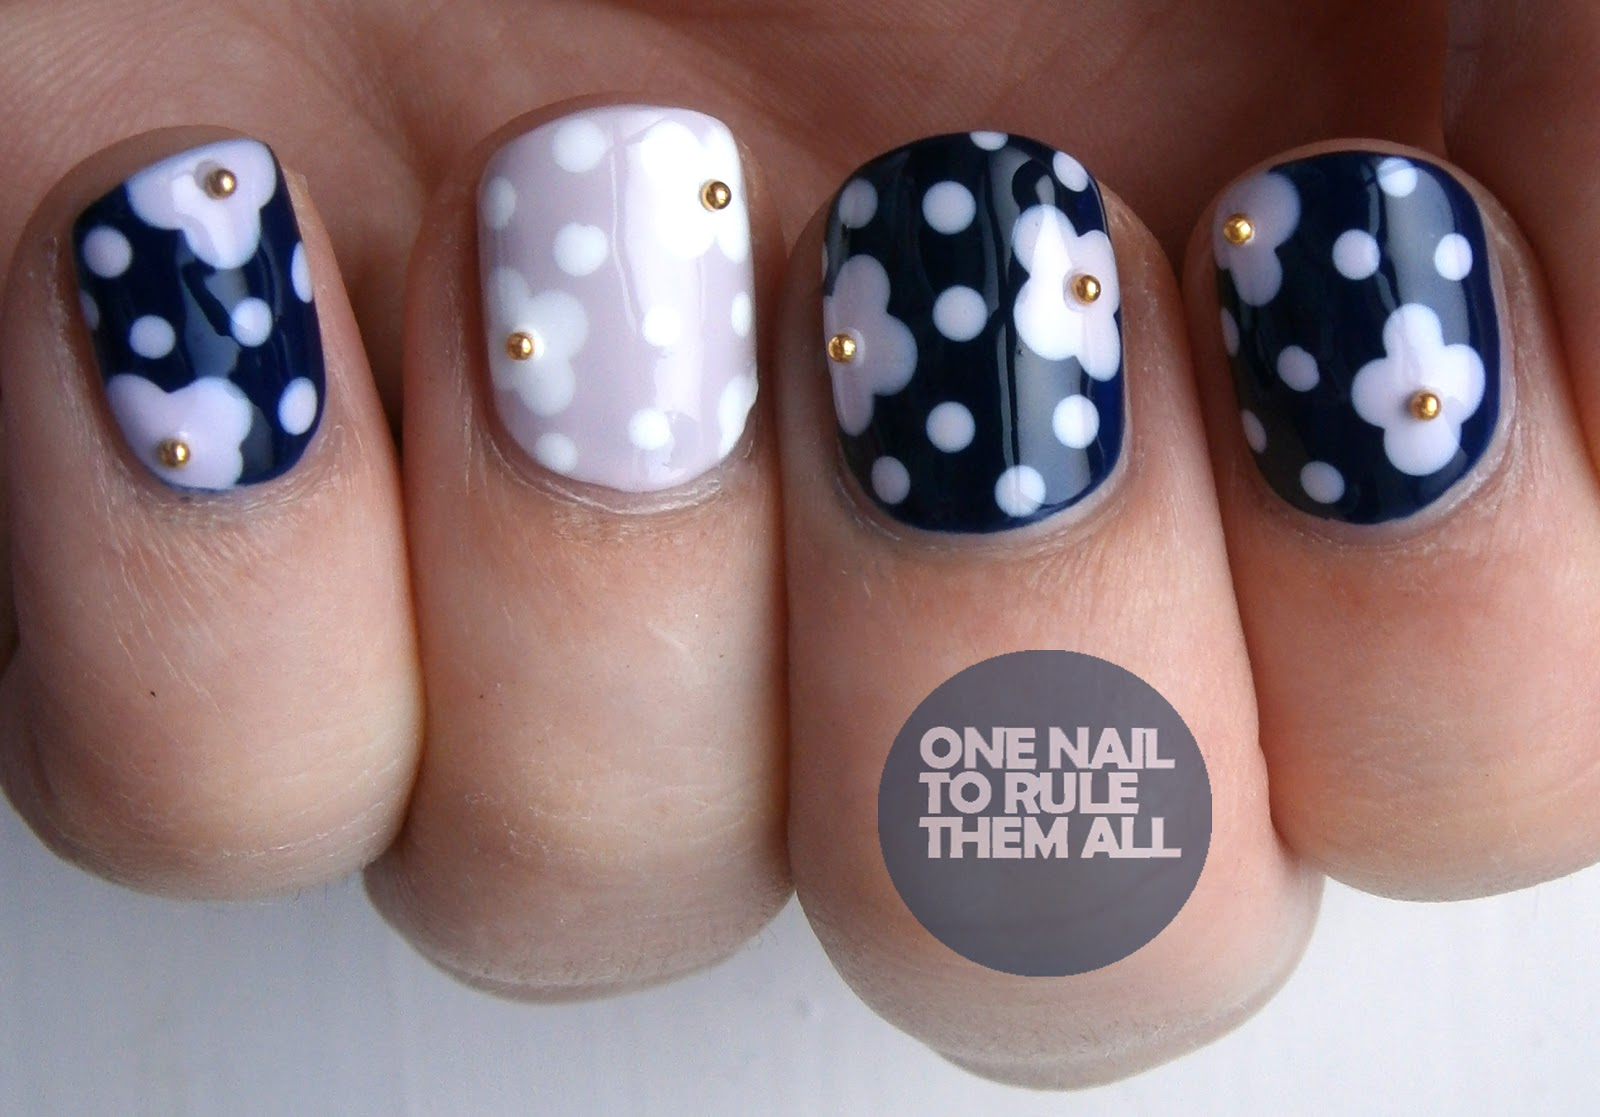 One nail to rule them all flowers and beads saturday 13 october 2012 sciox Images